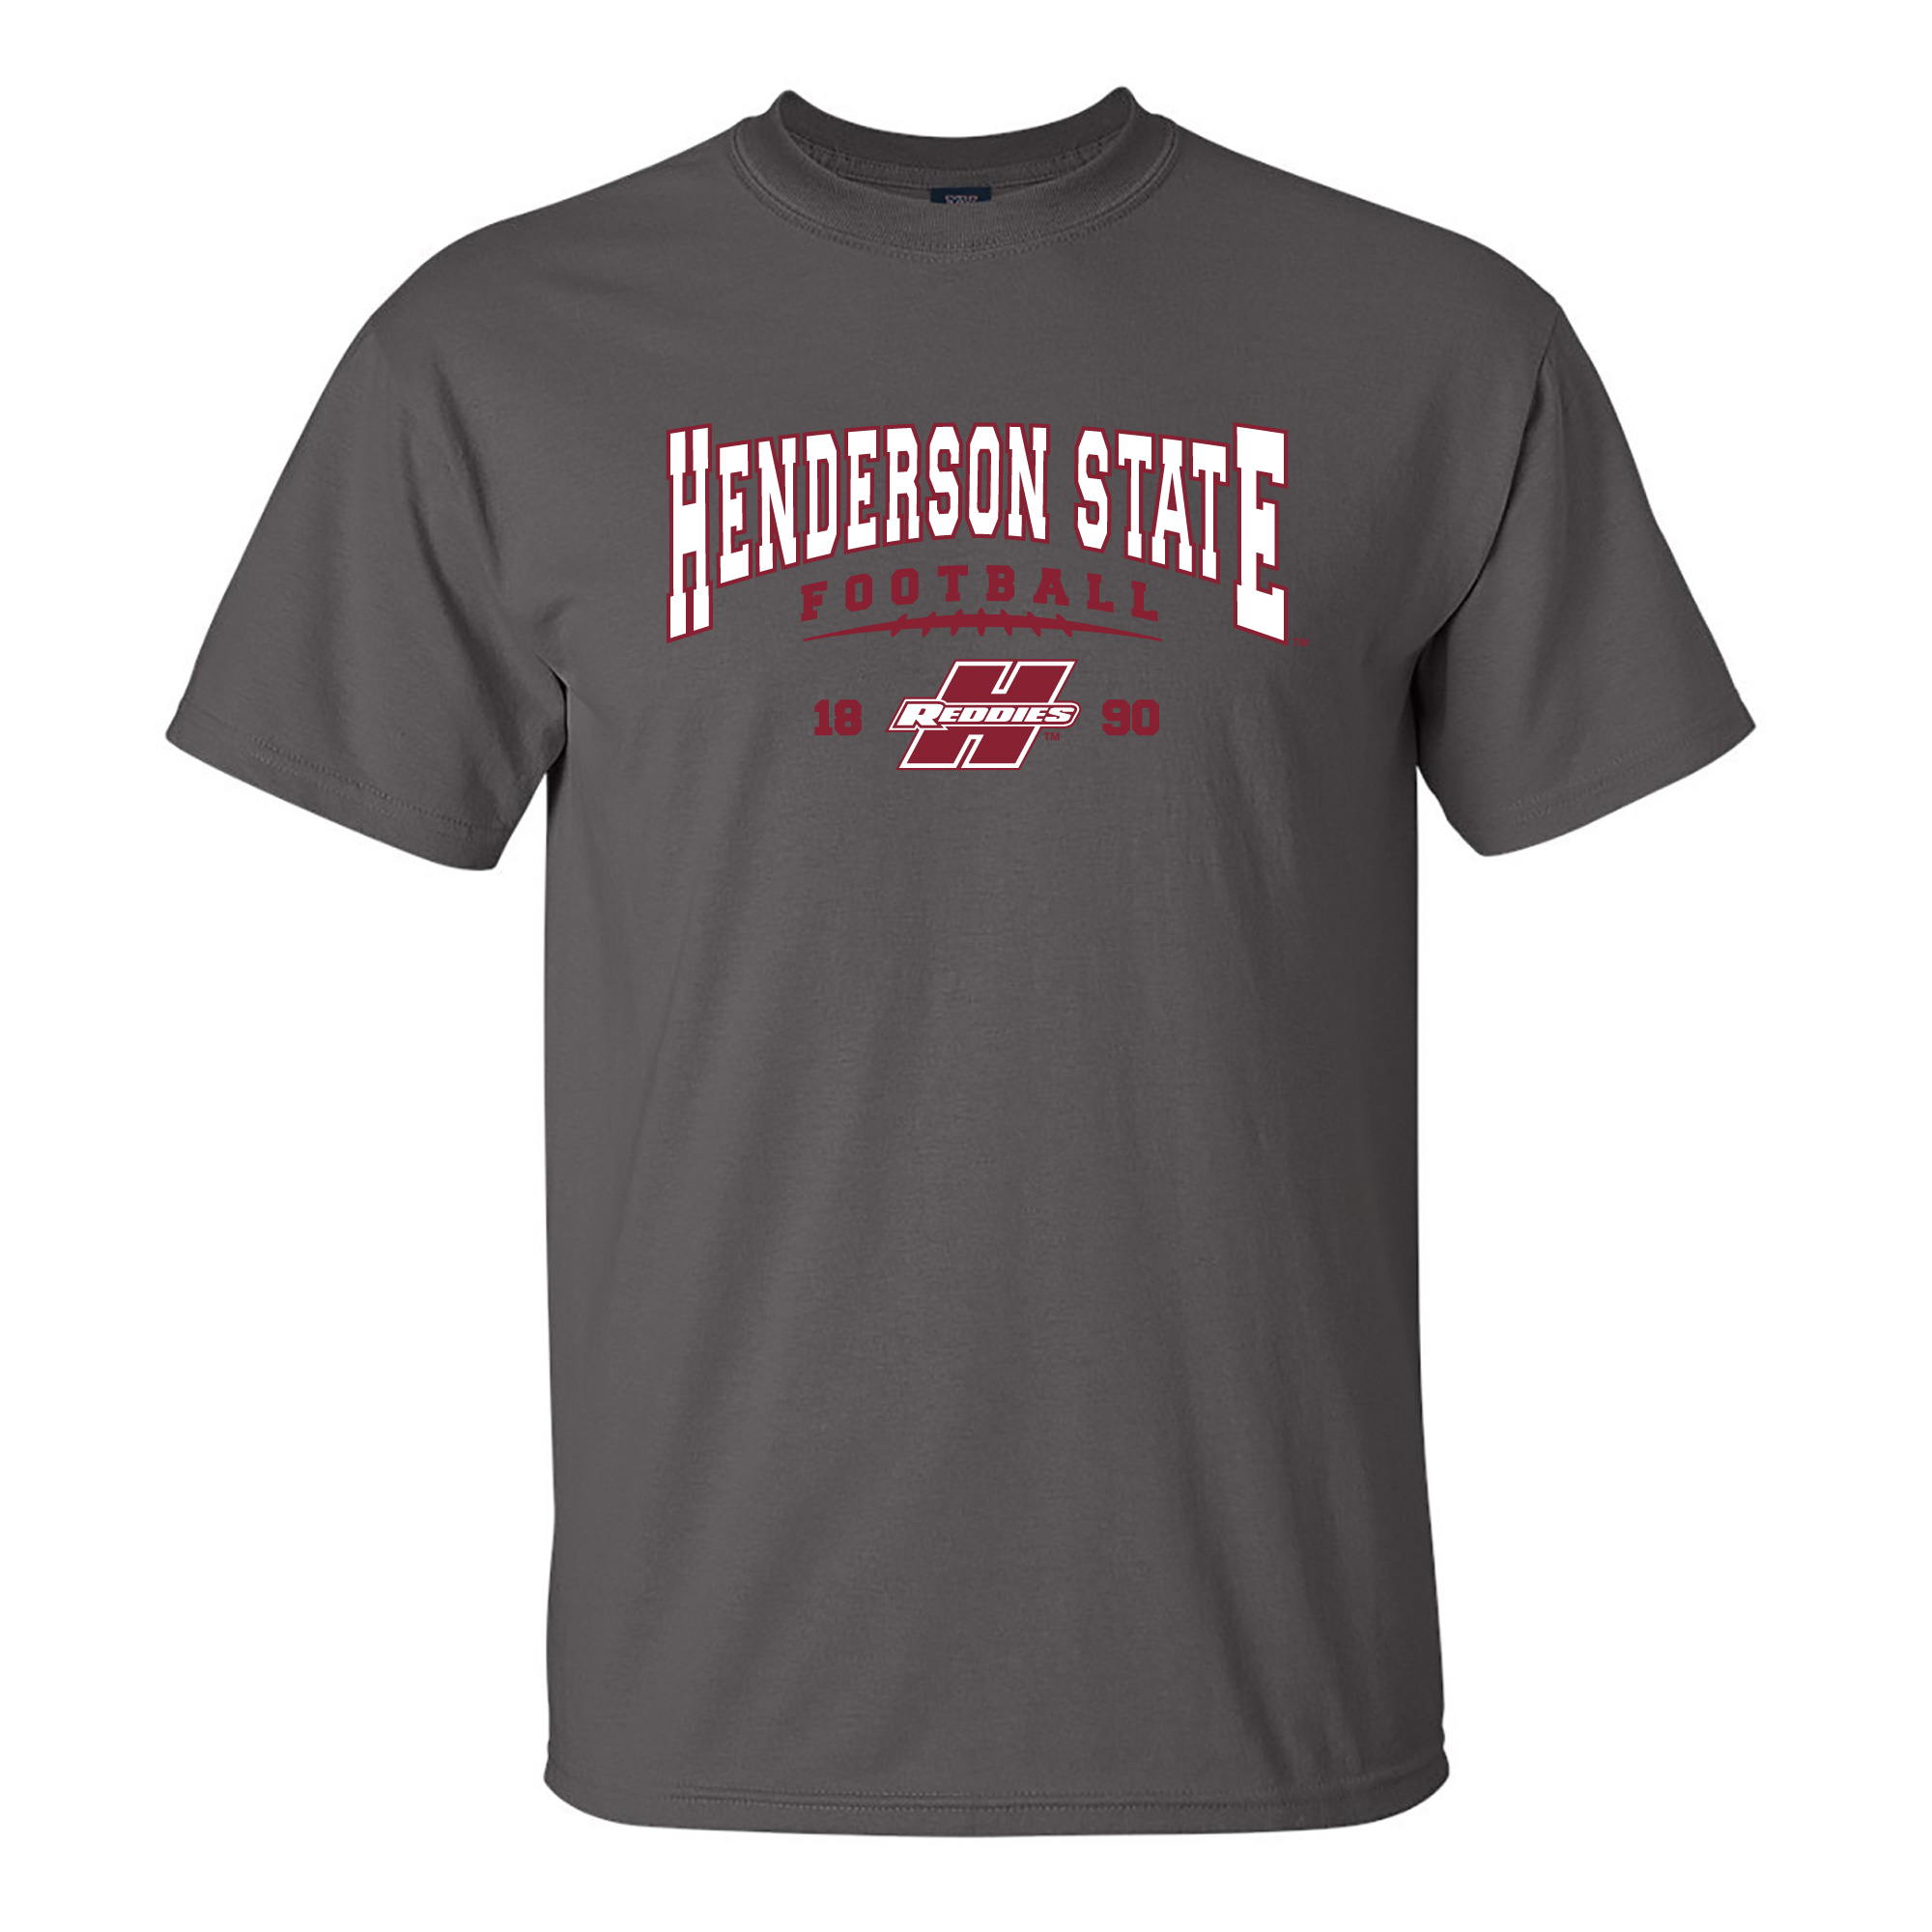 Henderson State Football Classic T-Shirt